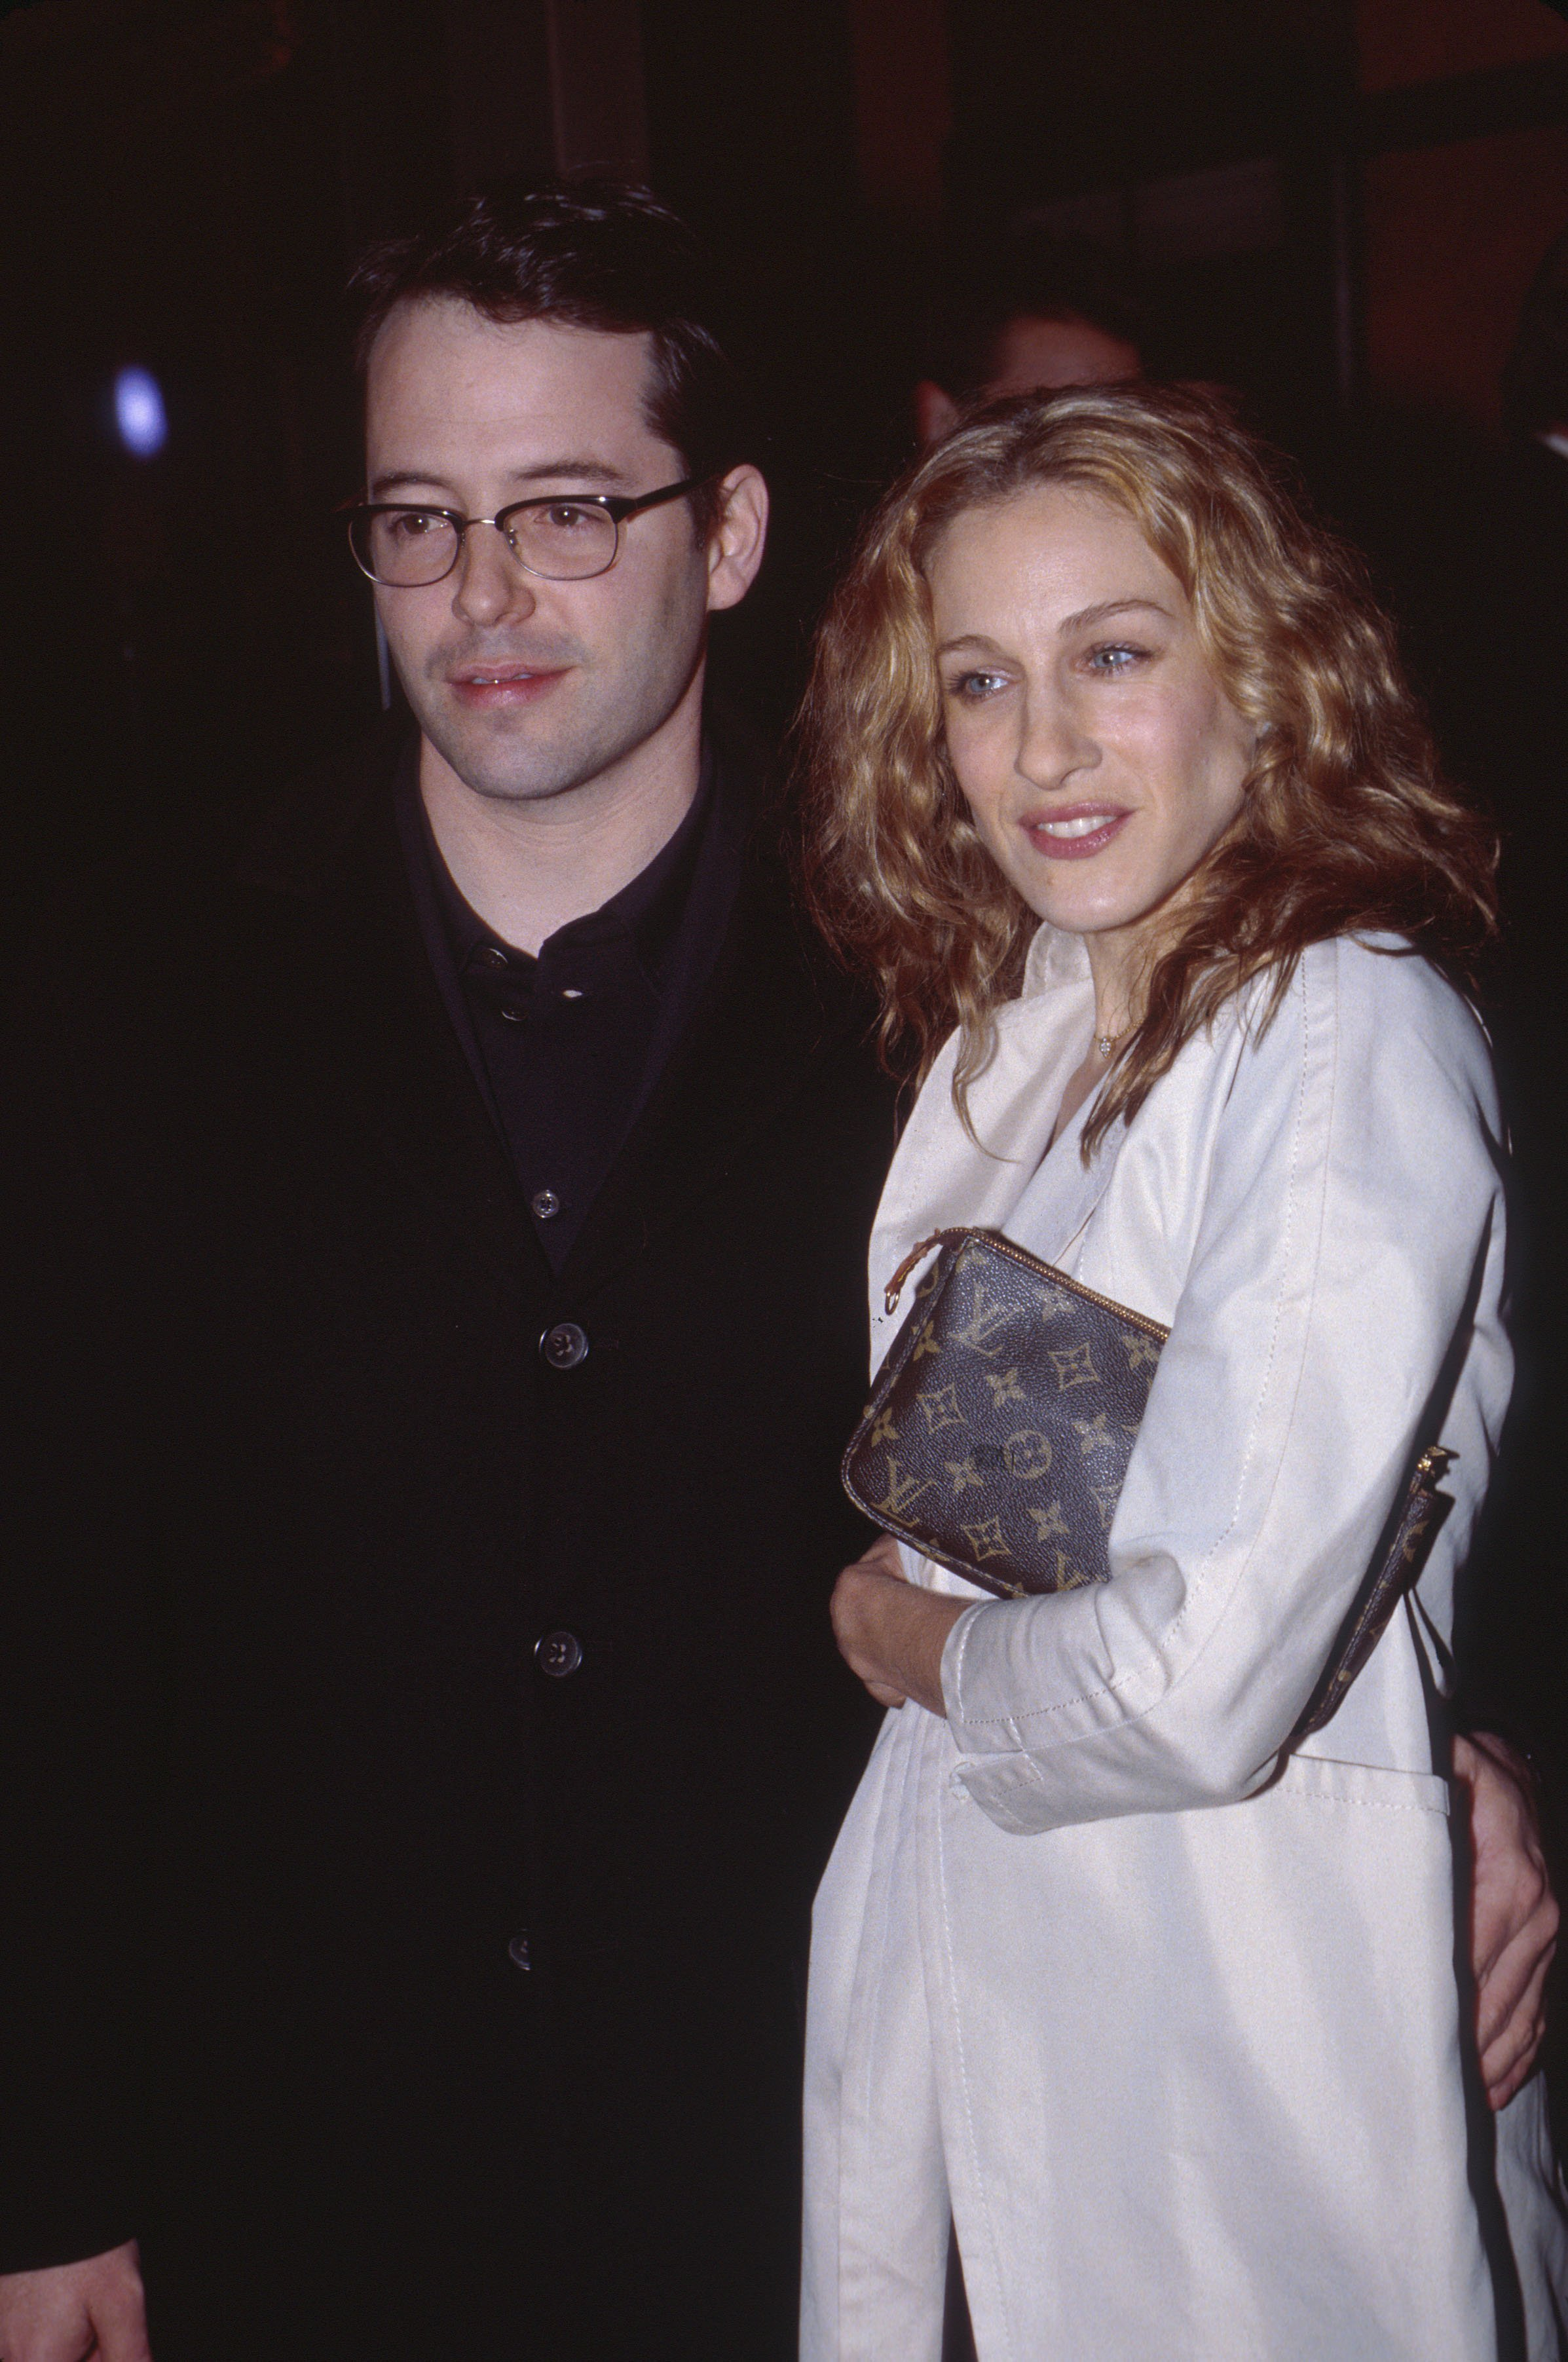 Sarah Jessica Parker and Matthew Broderick in their early days as a couple | Photo: Getty Images